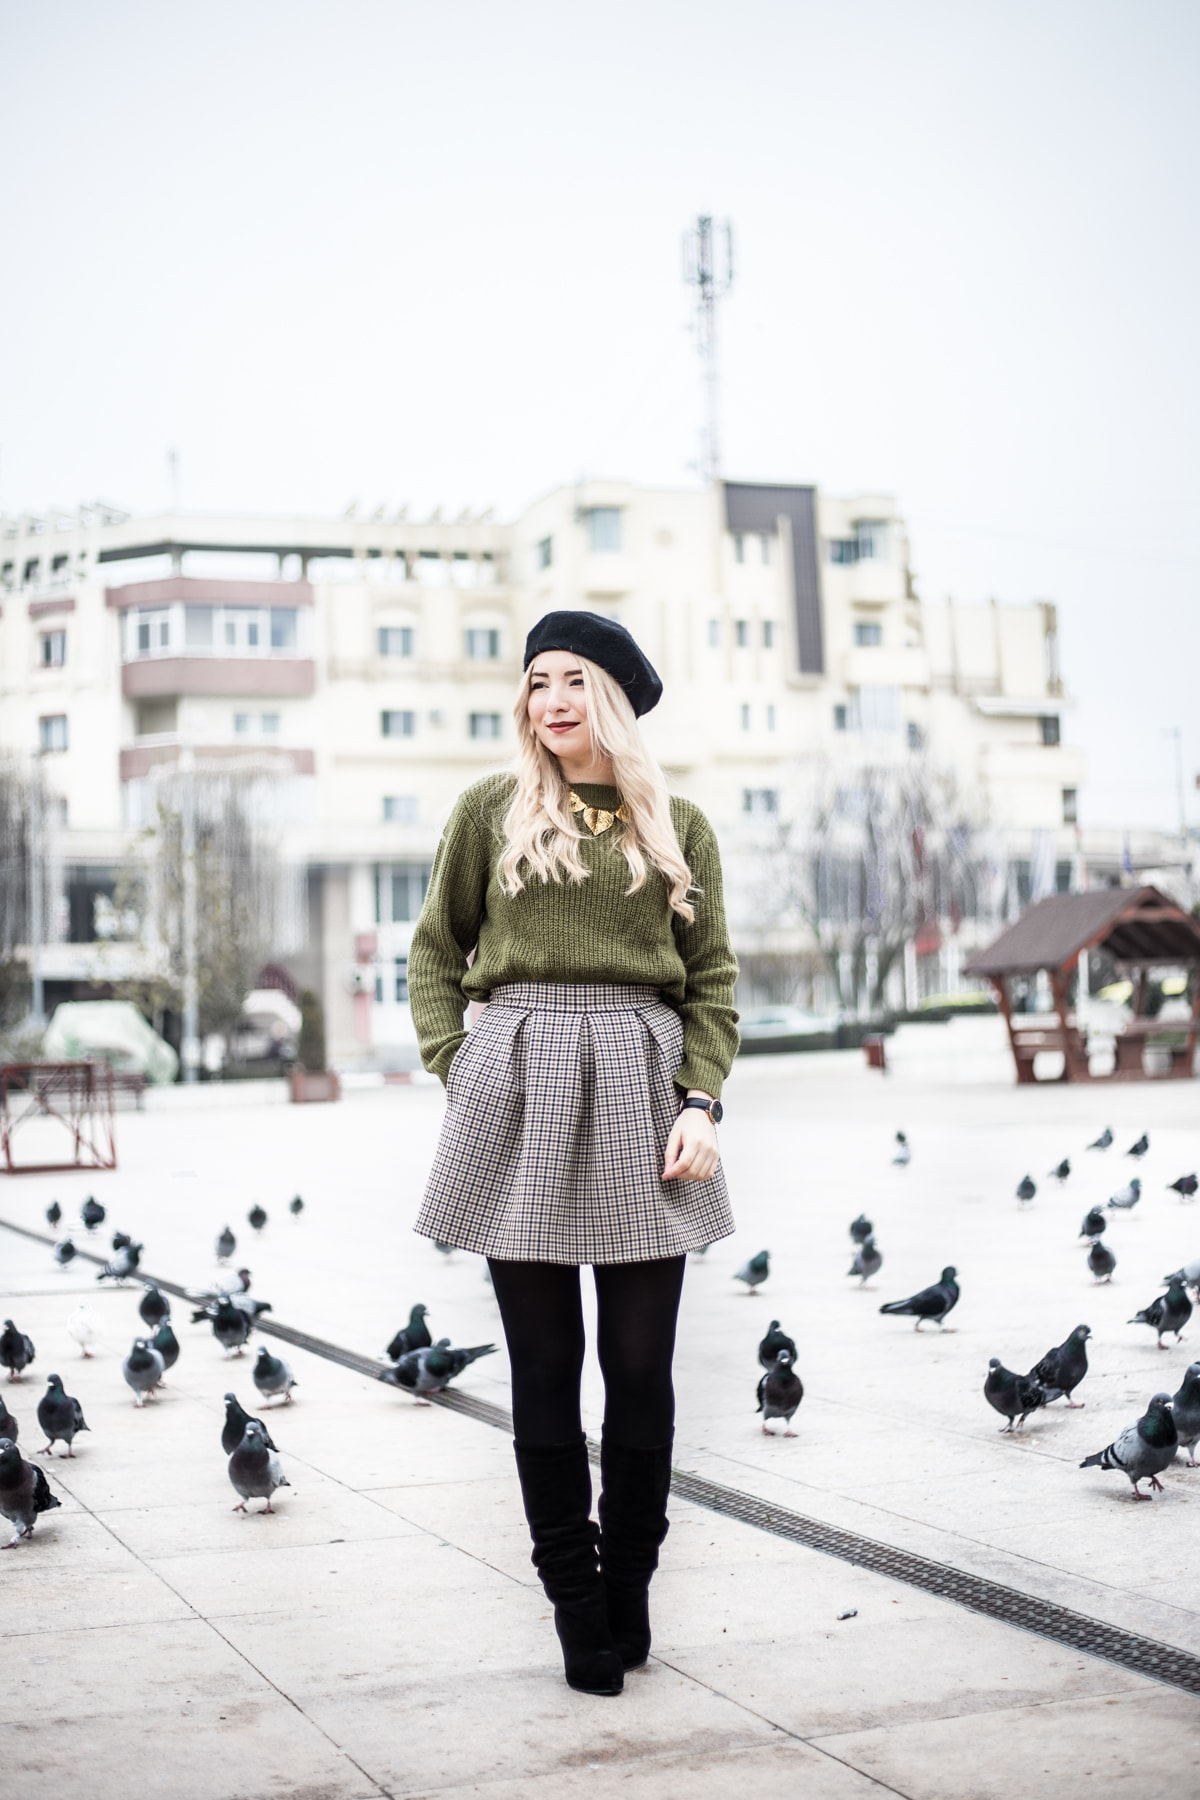 Street style, fall, autumn, winter, look, outfit, military green sweater, plaid mini skirt, short skirt, plaids, black tights, black boots, Andreea Ristea, fashion blogger, Romania